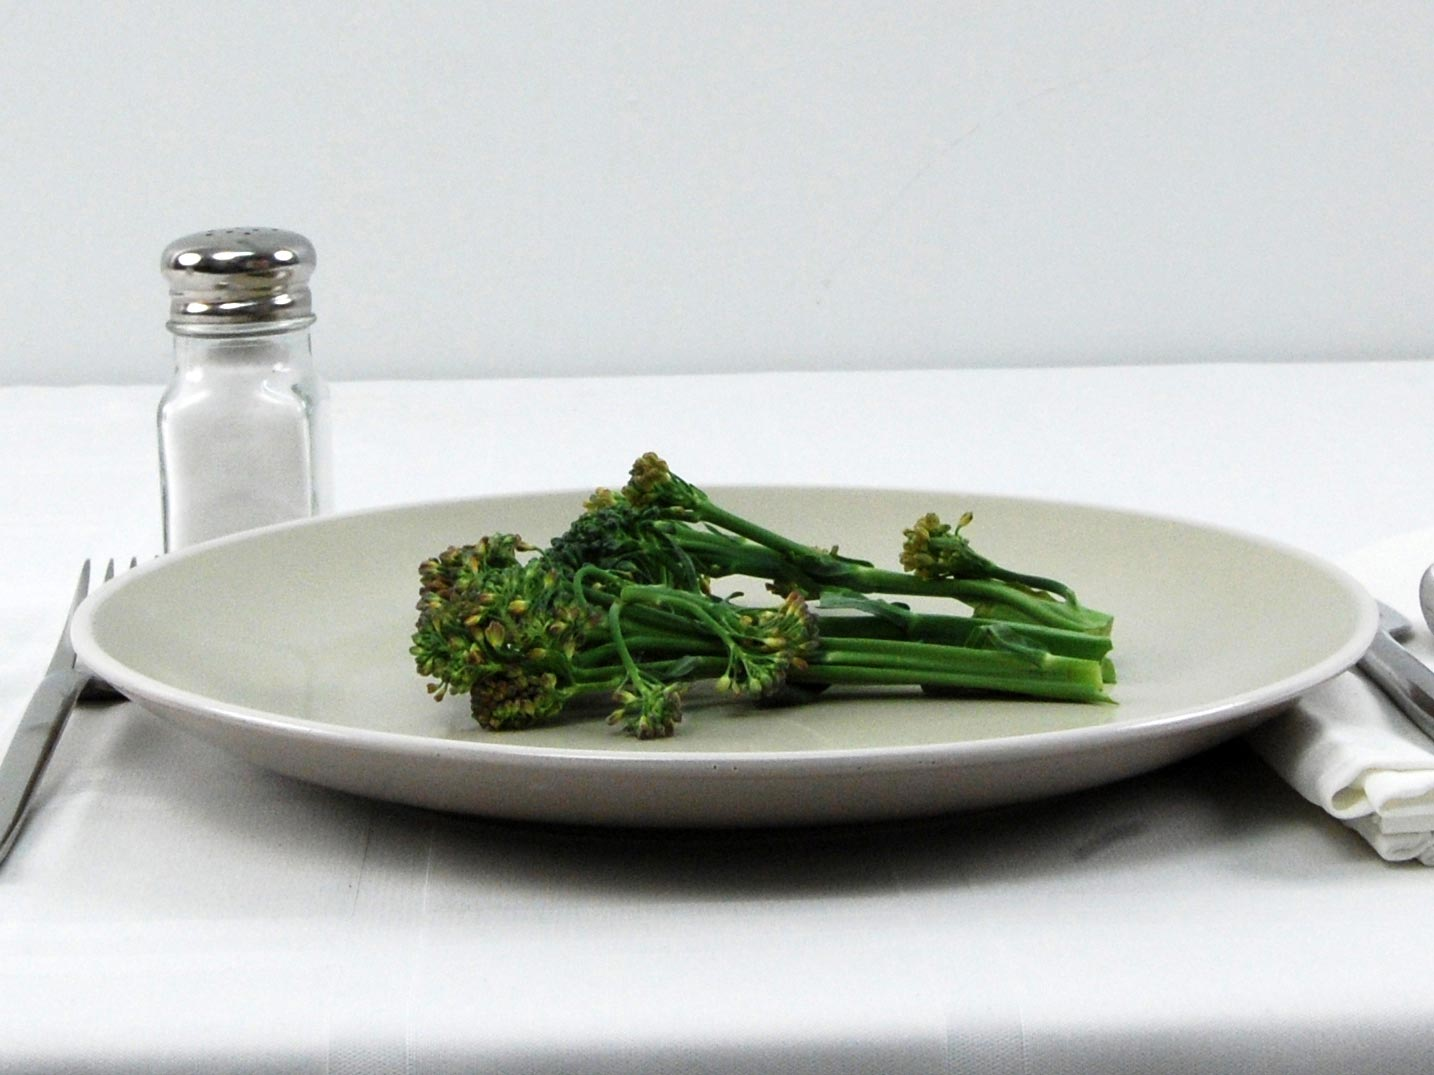 Calories in 27 grams of Broccolini